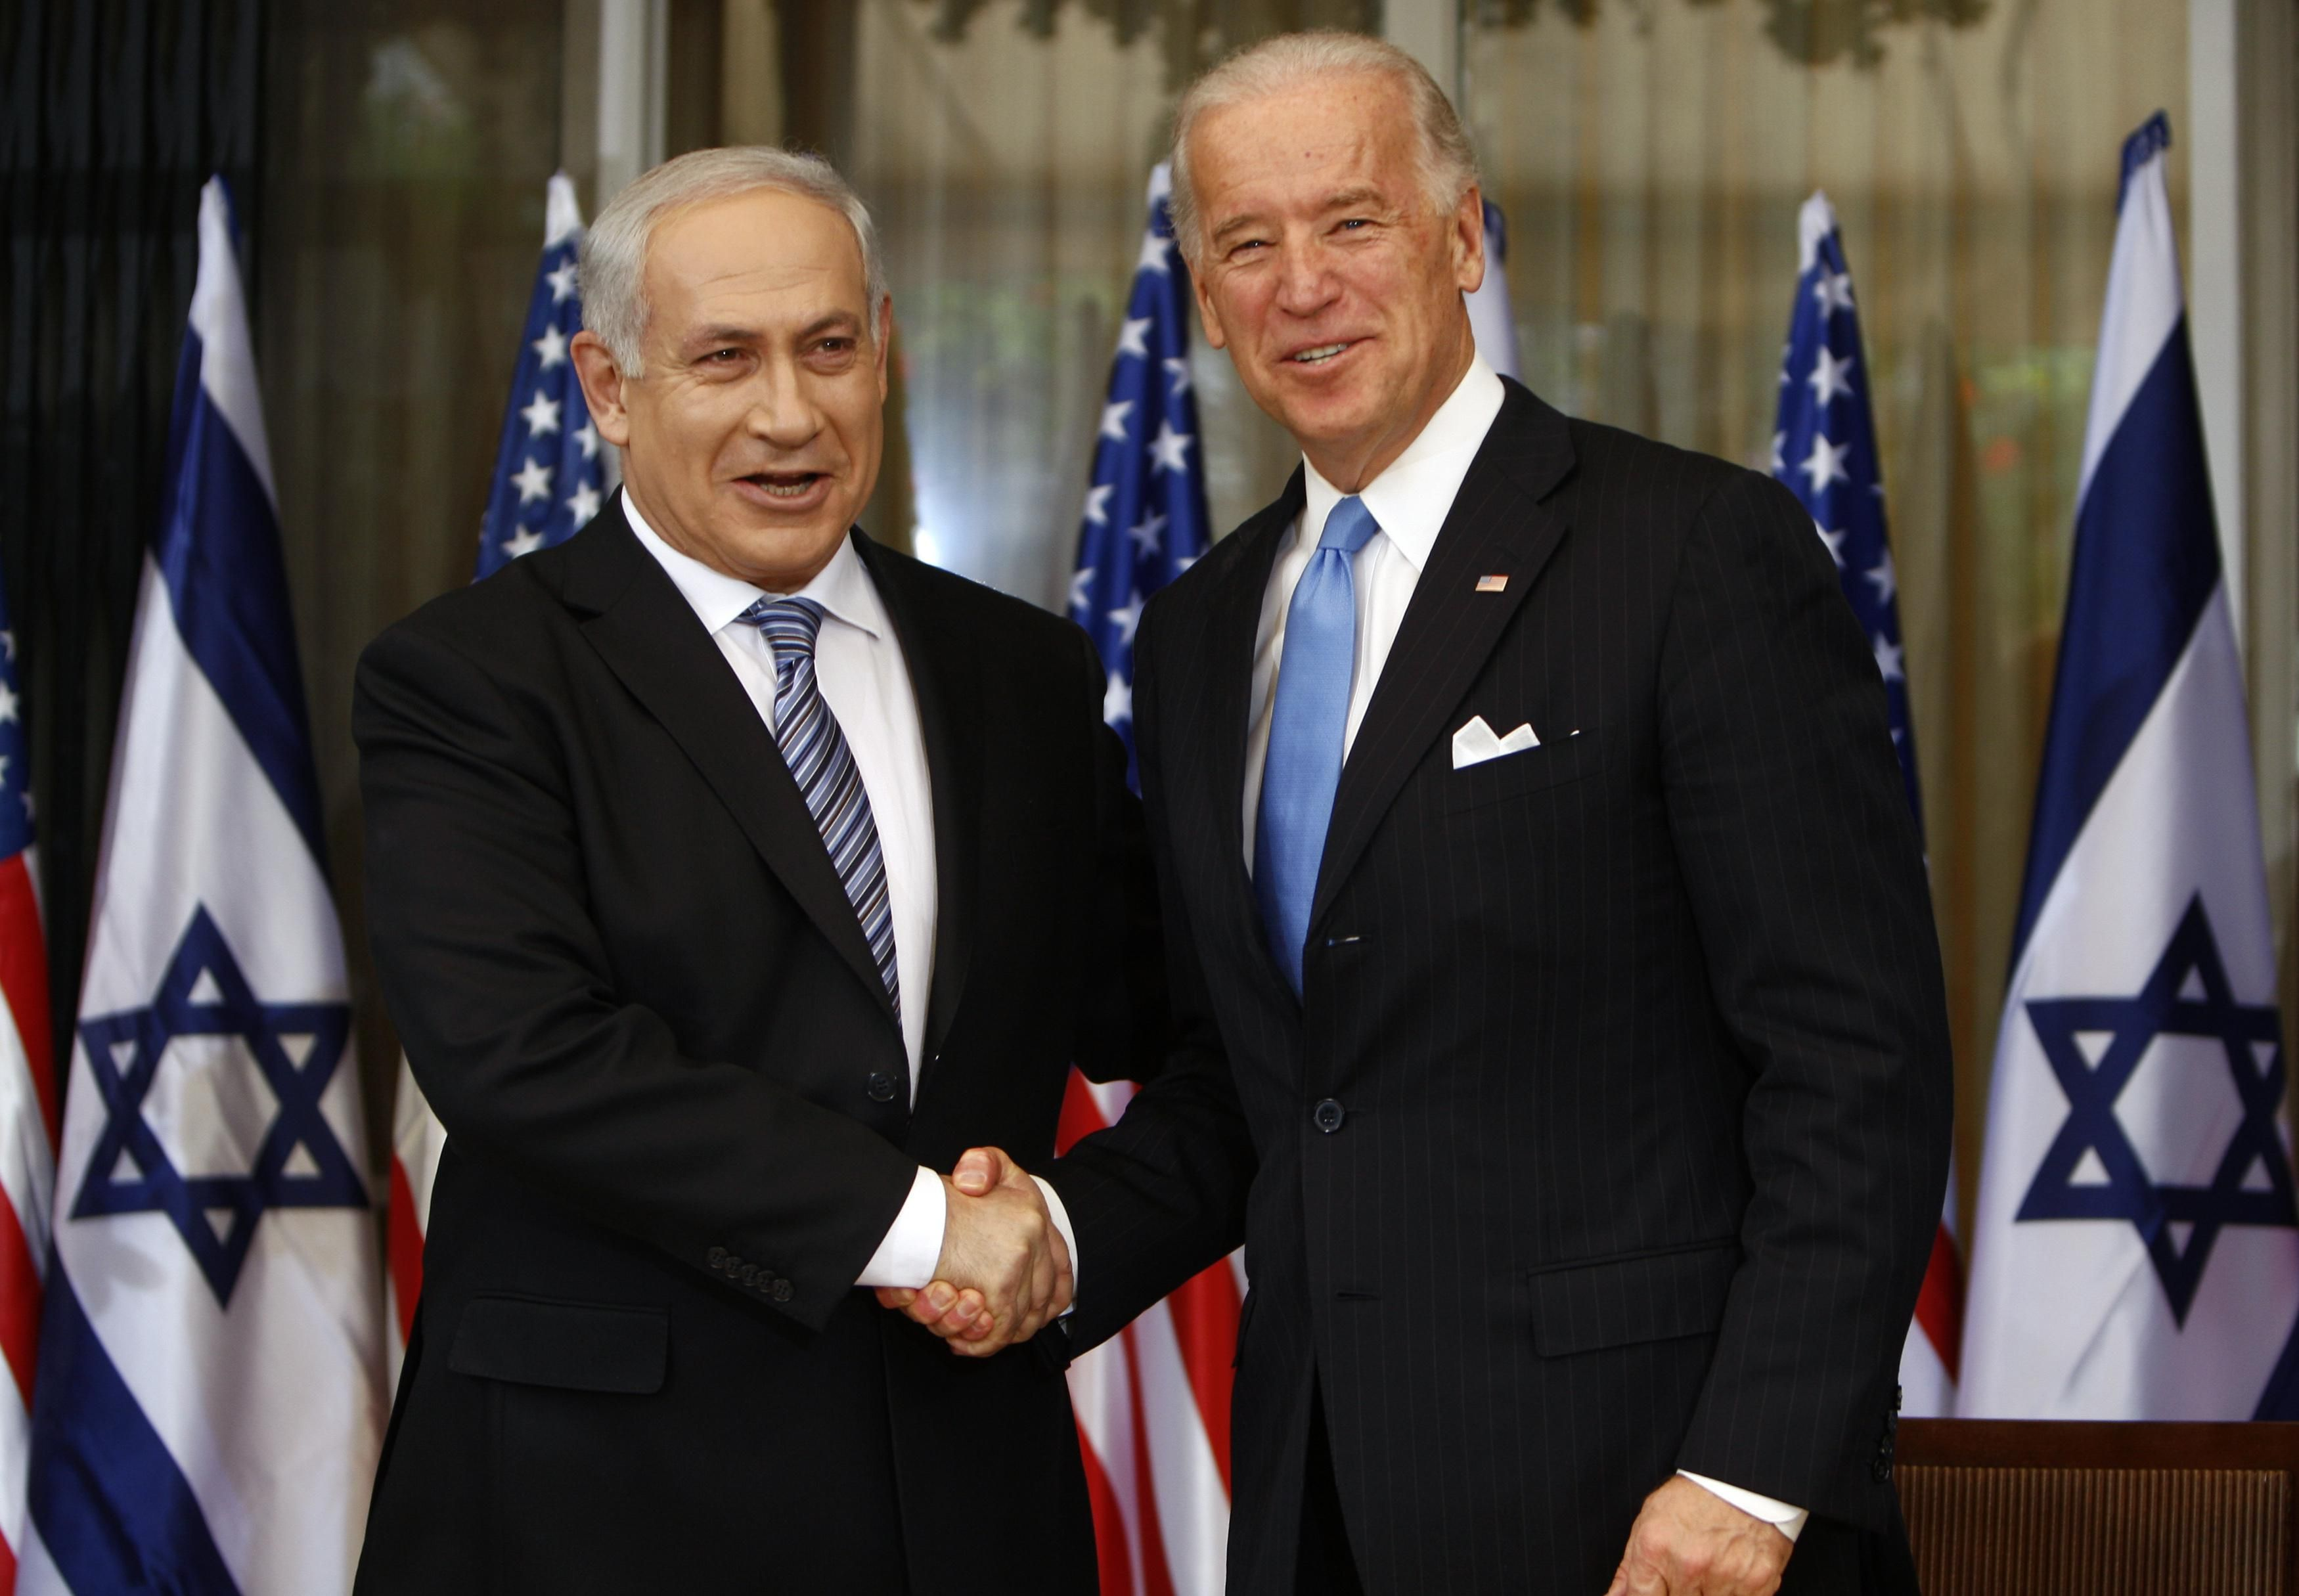 What kind of leverage does Biden really have with Bibi?